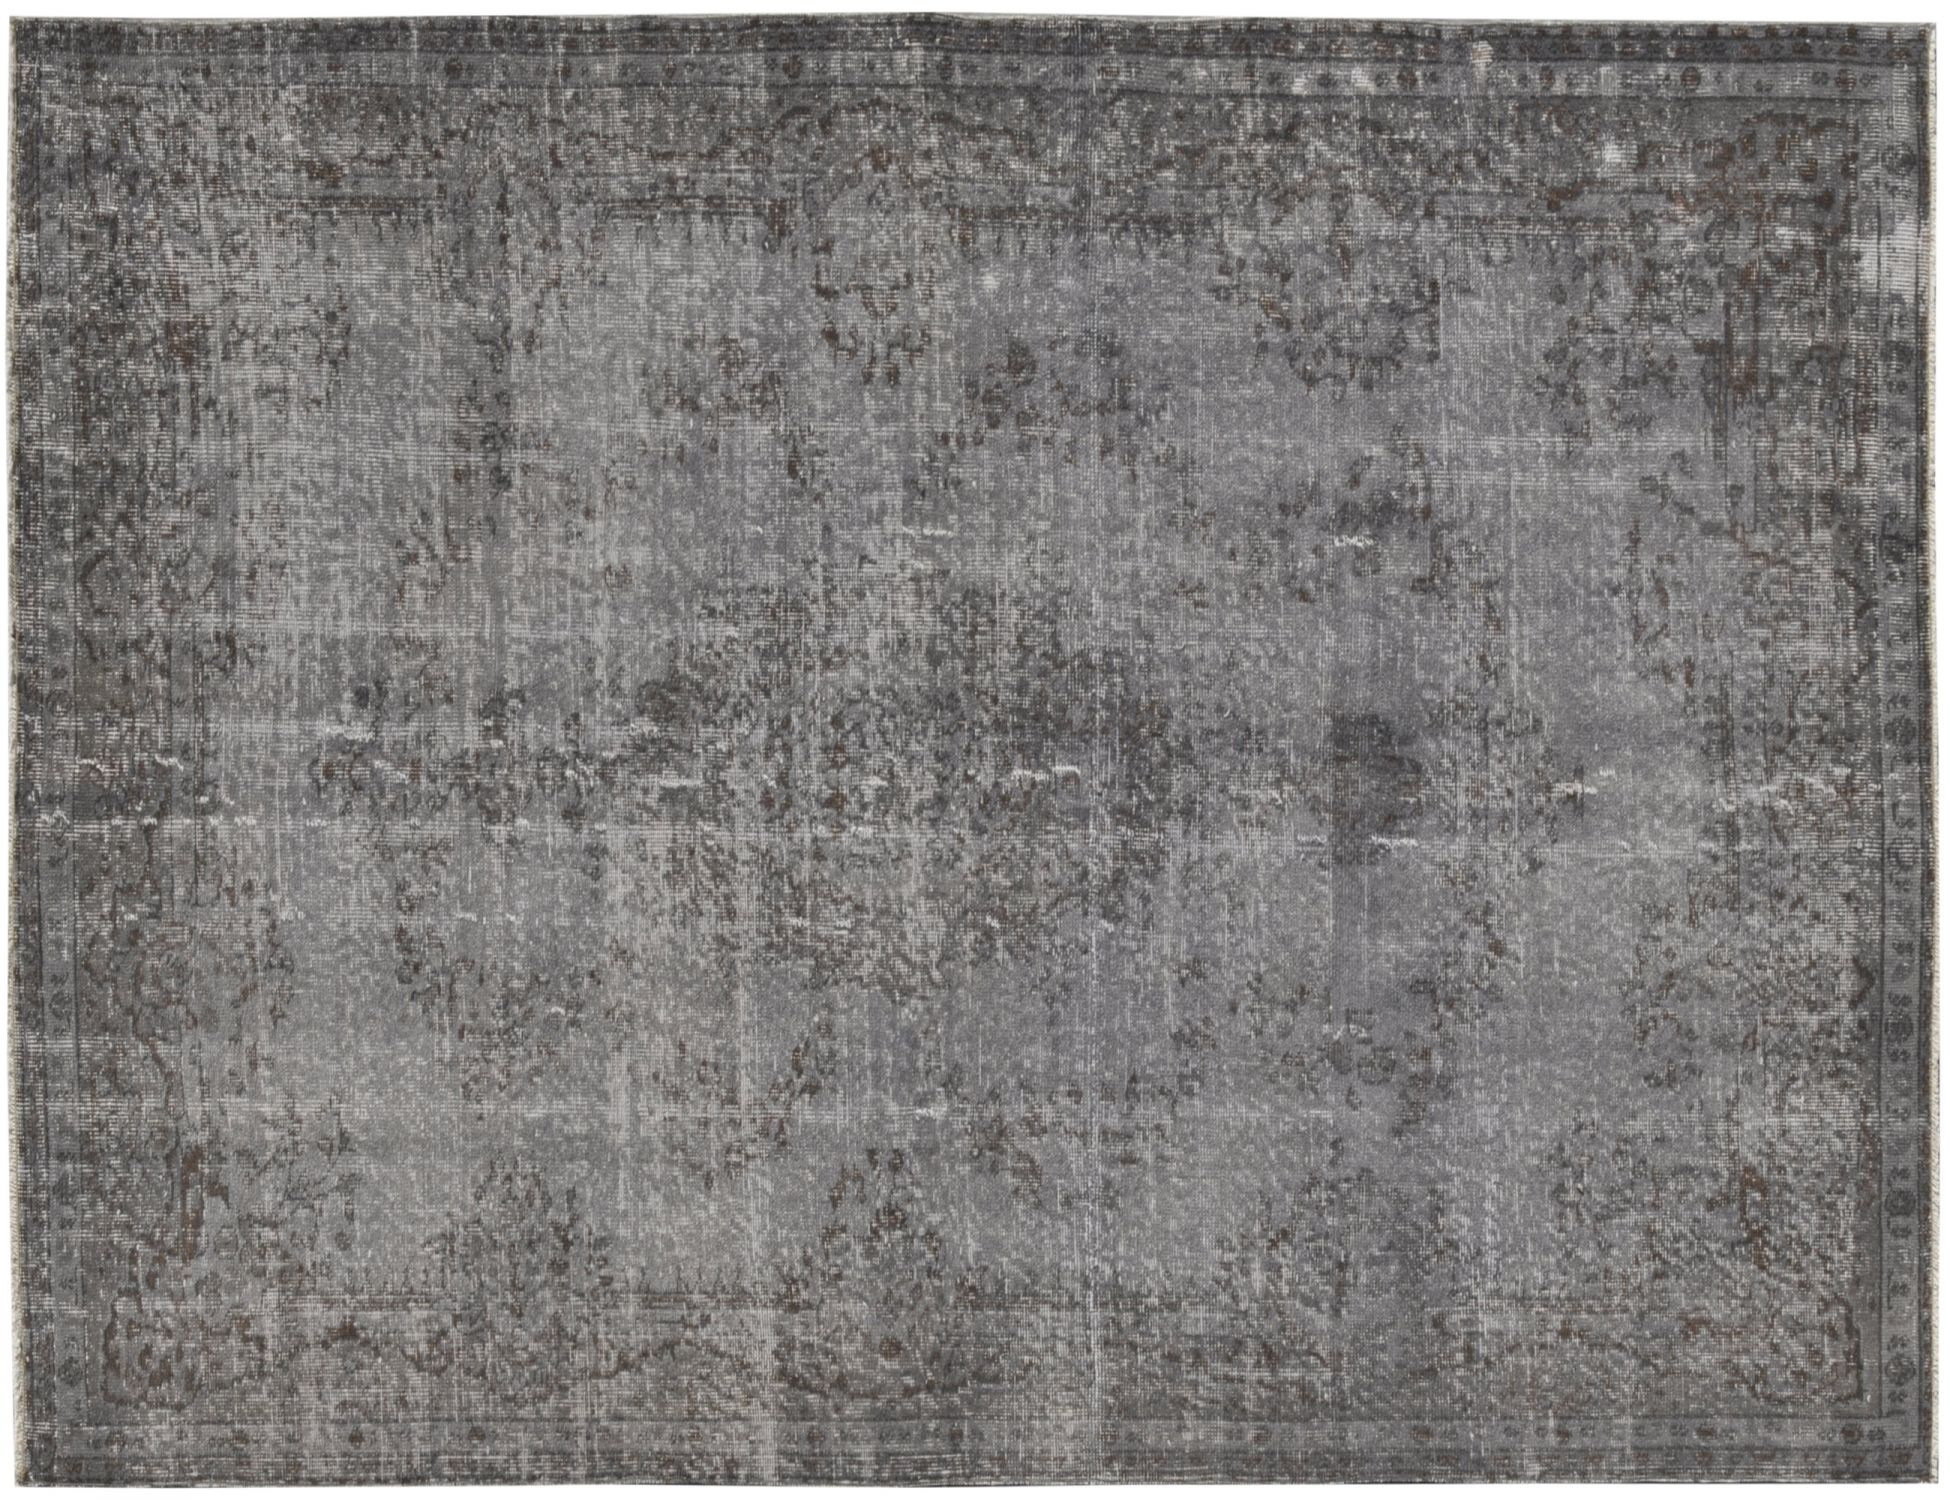 Vintage Carpet  grey <br/>270 x 160 cm